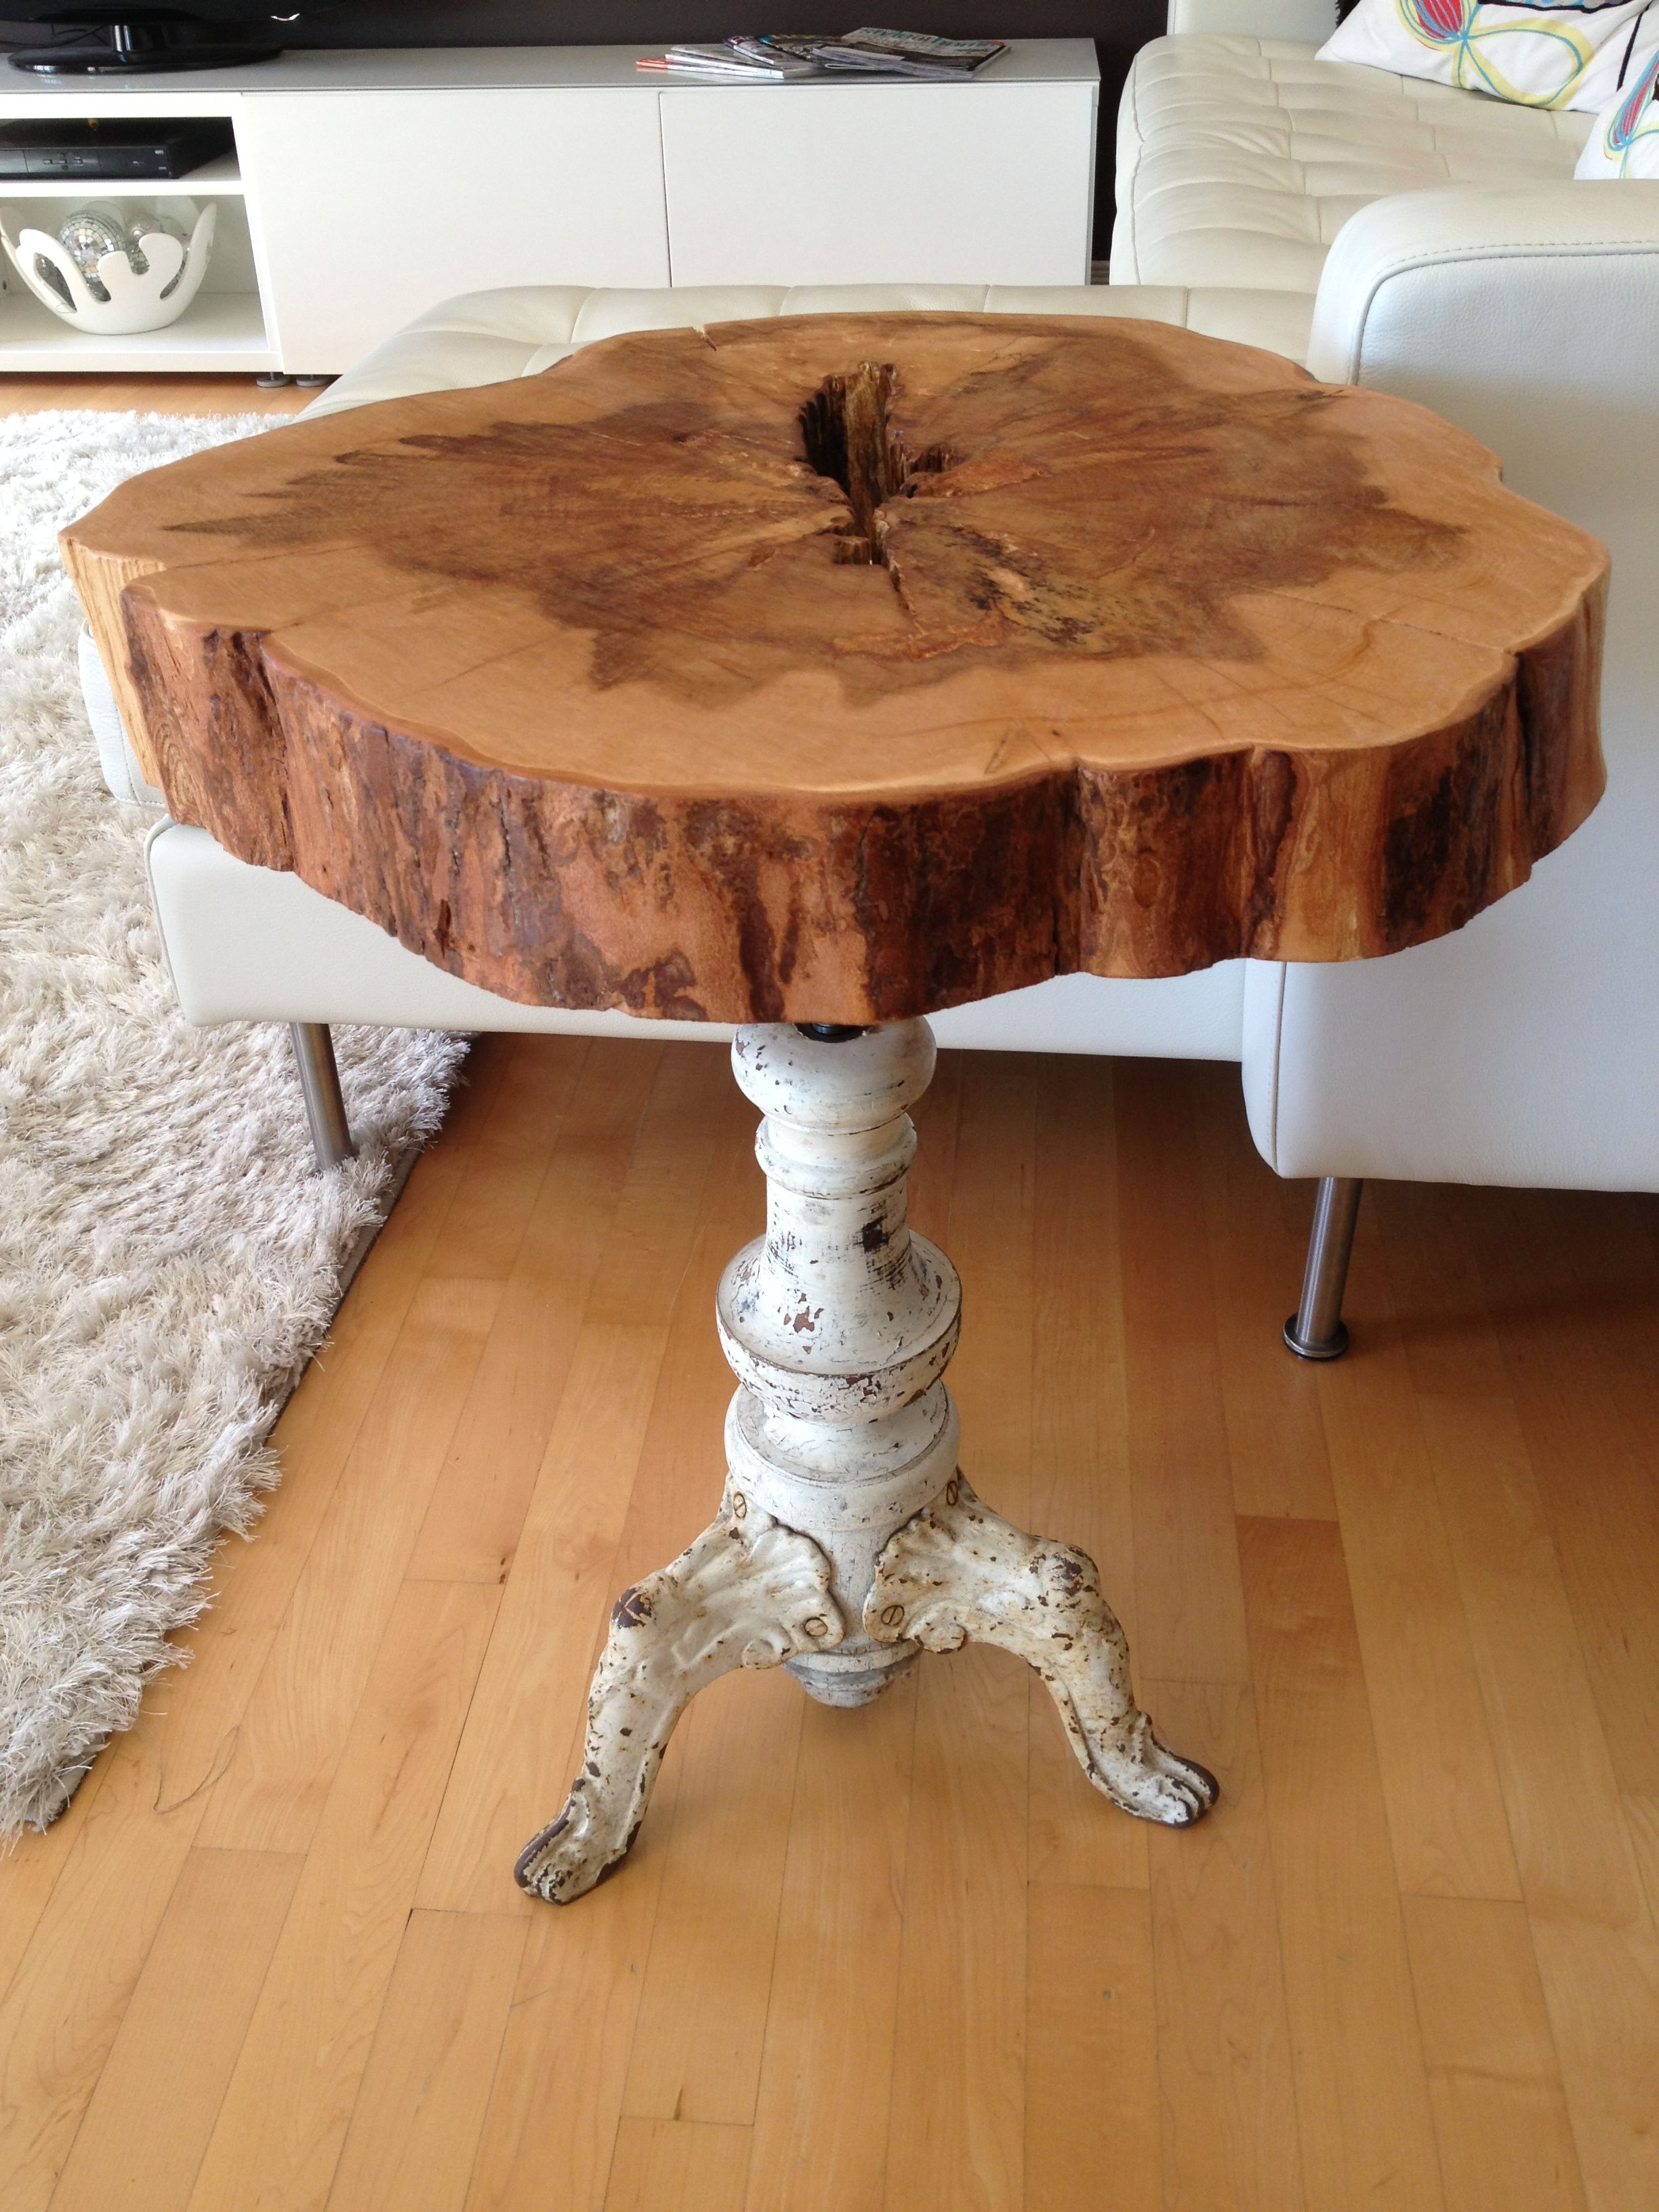 diy tree stump table ideas how make them end using recycled materials for why not homesense sheets leick mission dark blue painted dresser chocolate sofa what colour matches with